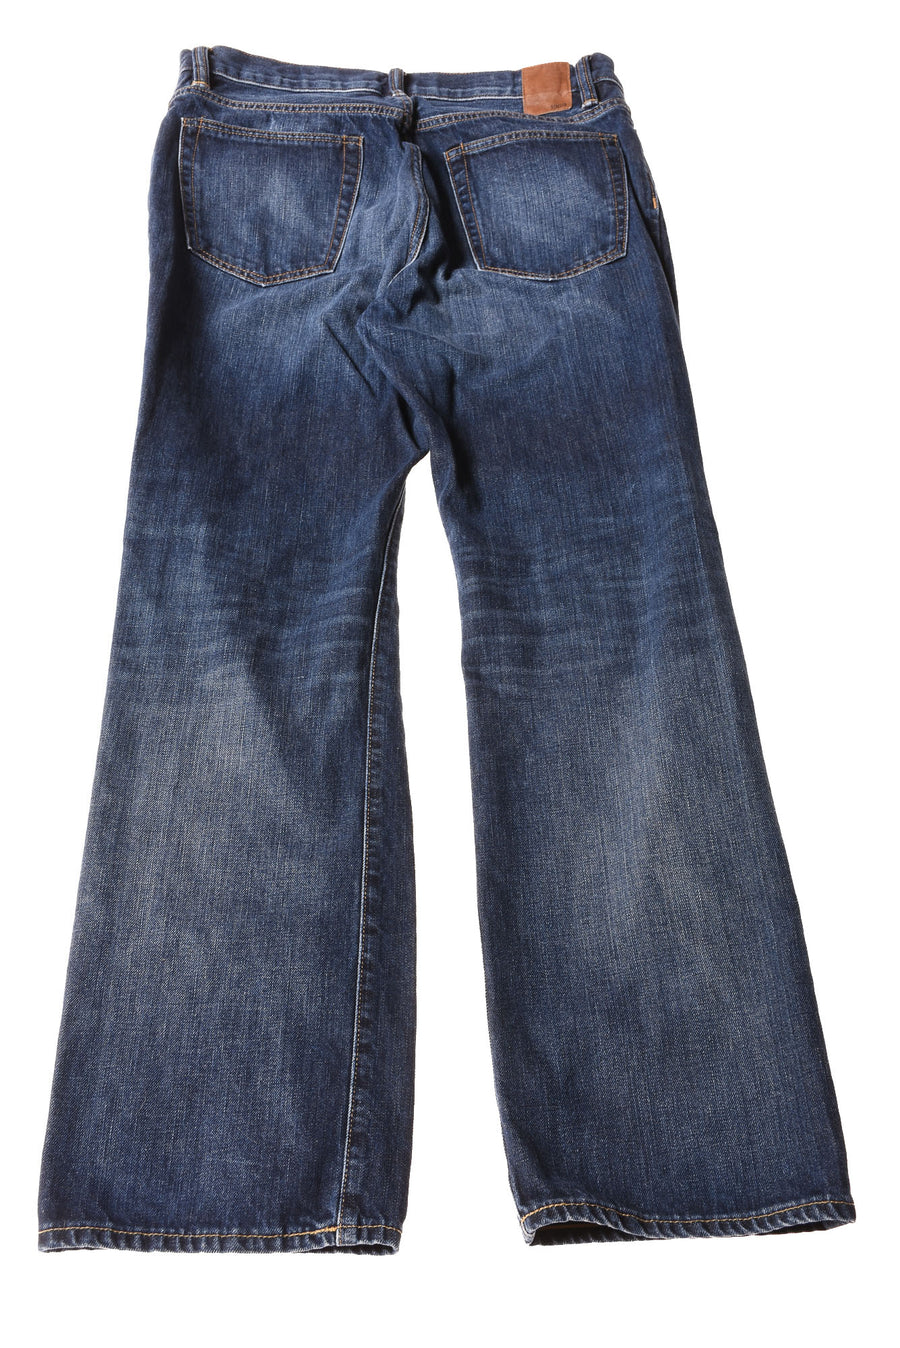 USED Gap Men's Jeans 33x32 Blue